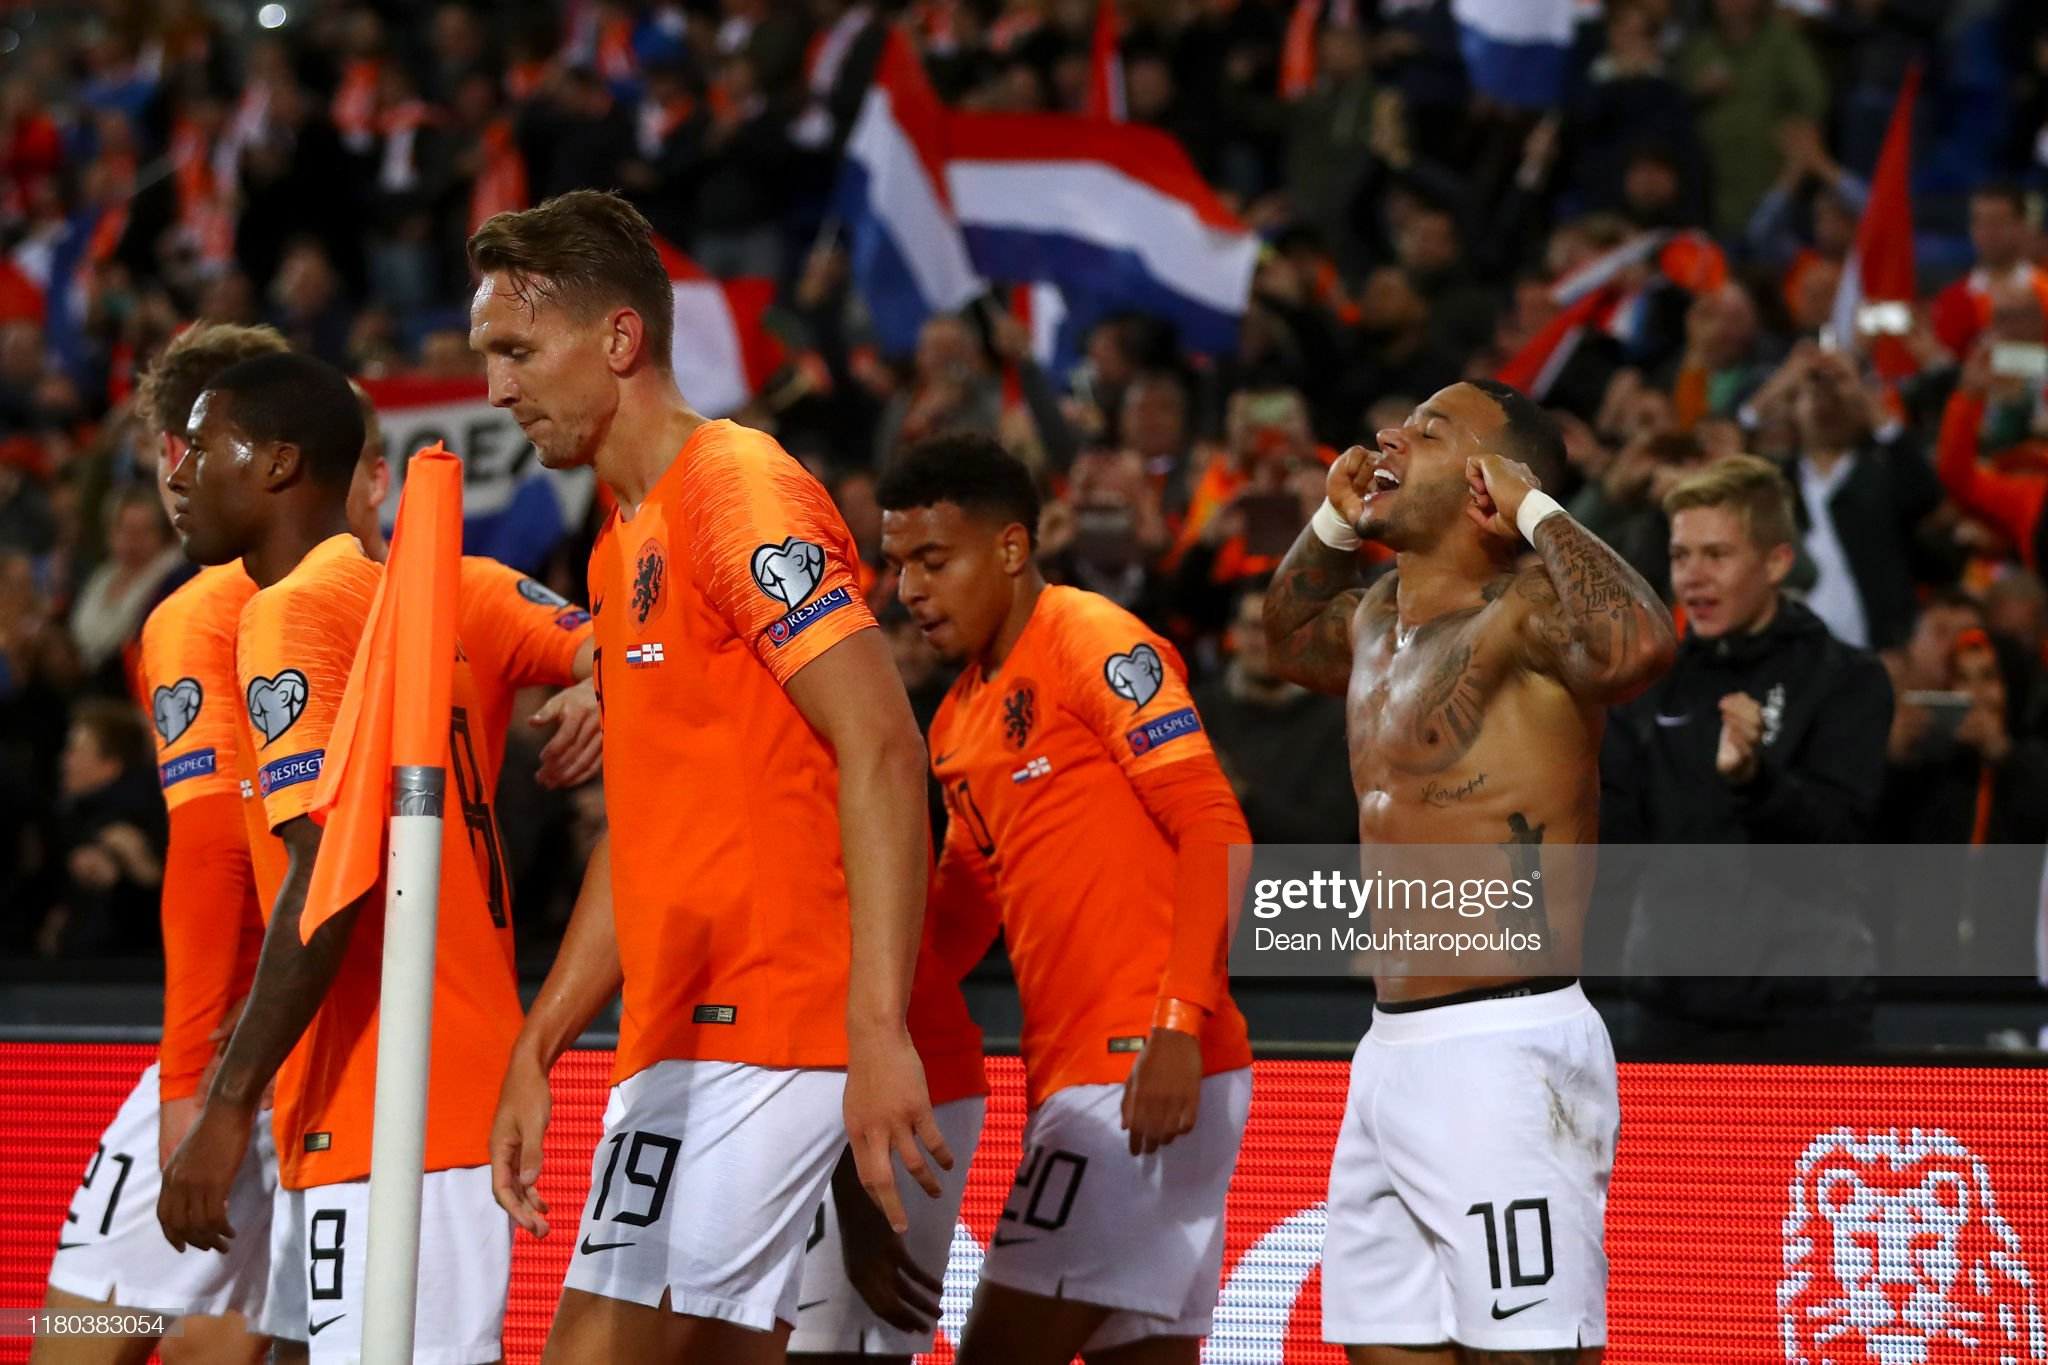 Belarus v Netherlands preview, prediction and odds